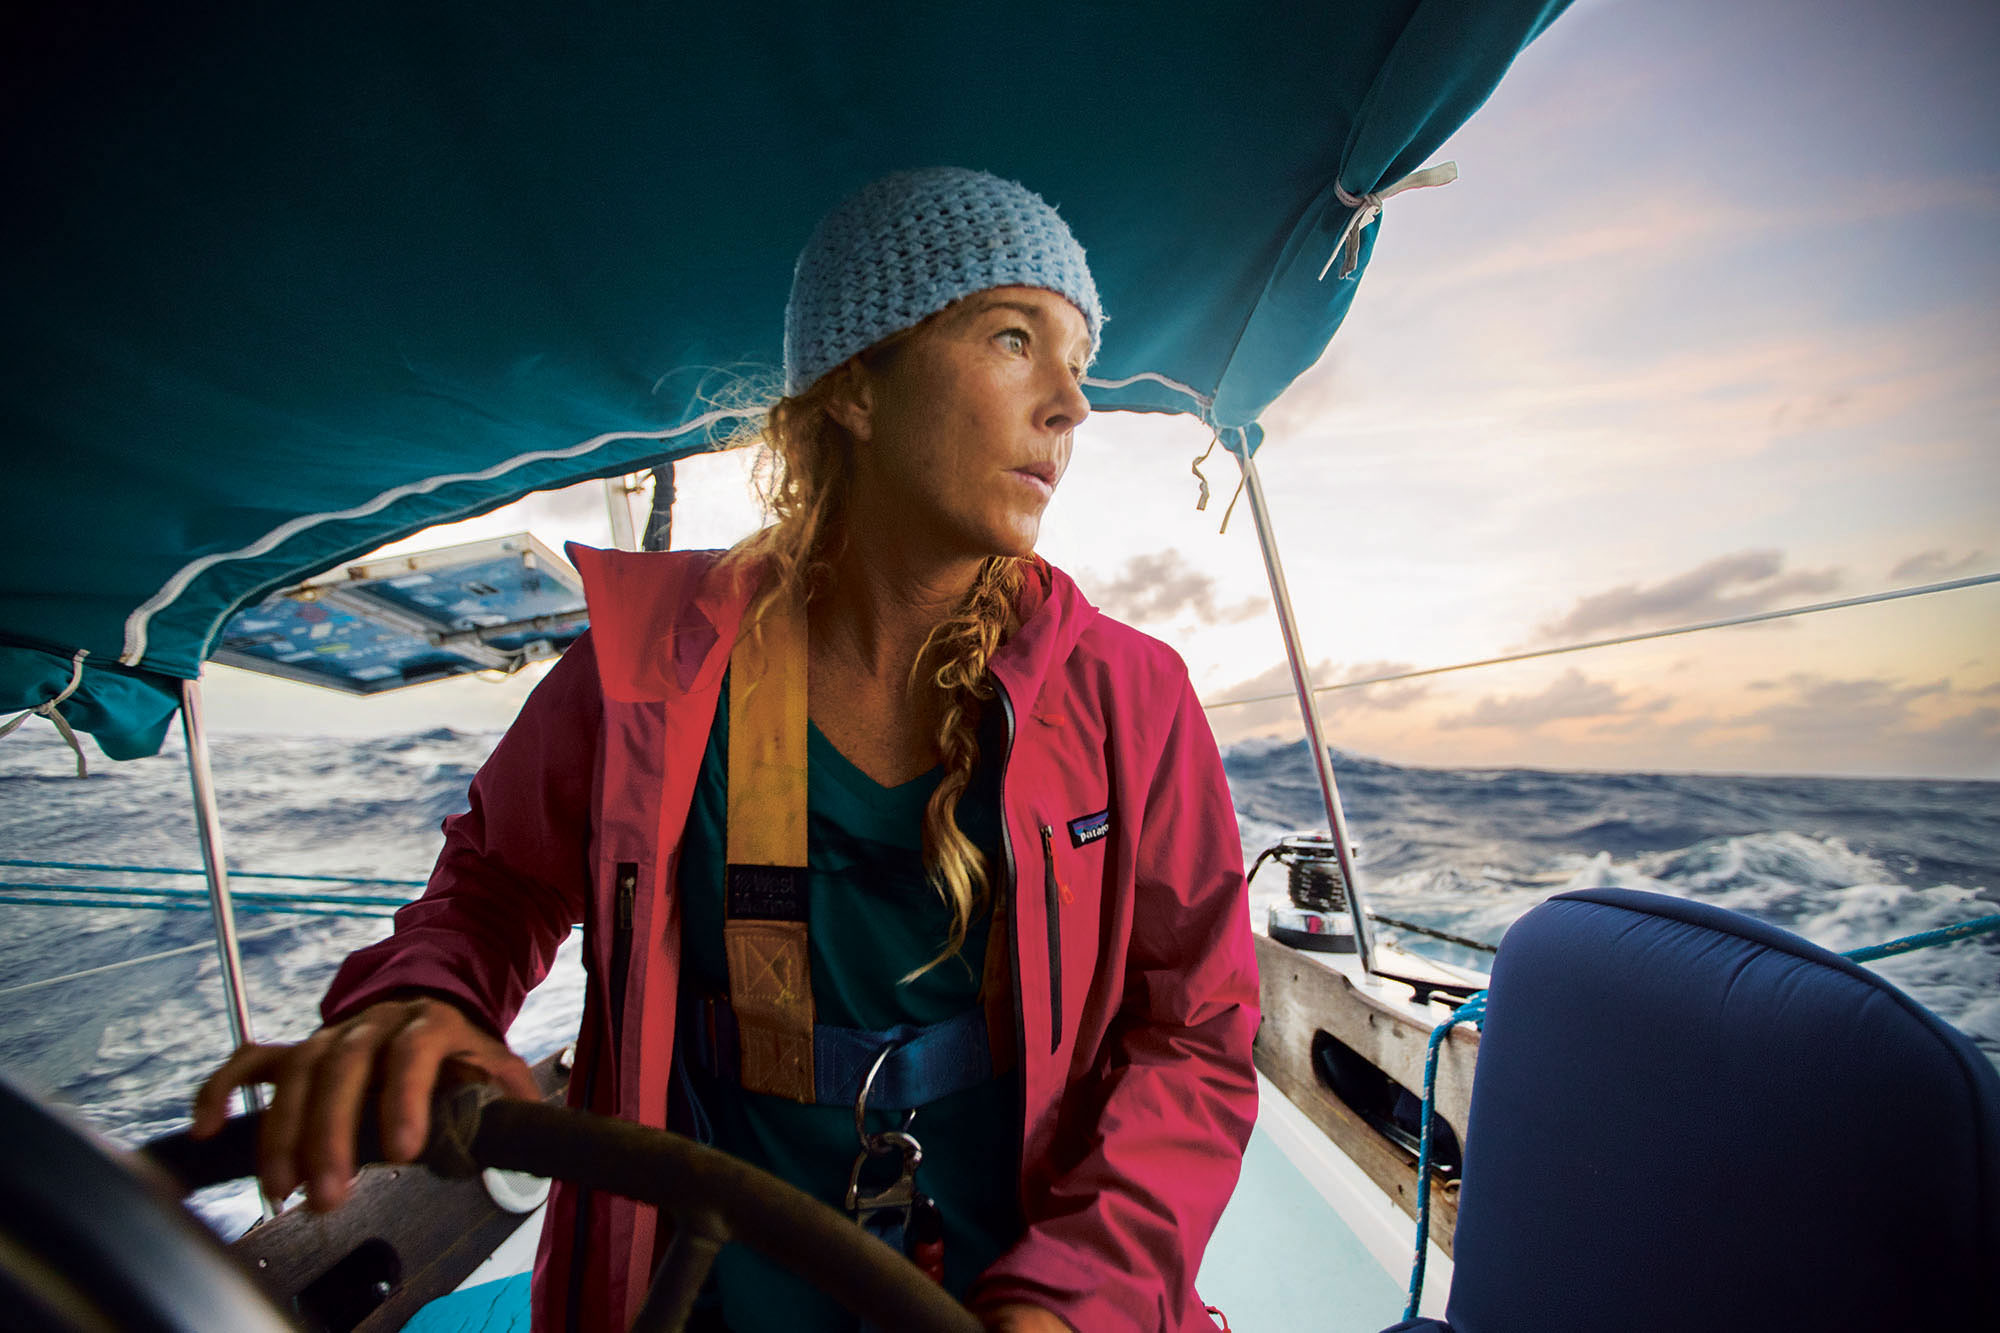 Surfer Liz Clark, on how to live on a sailboat for 12 years